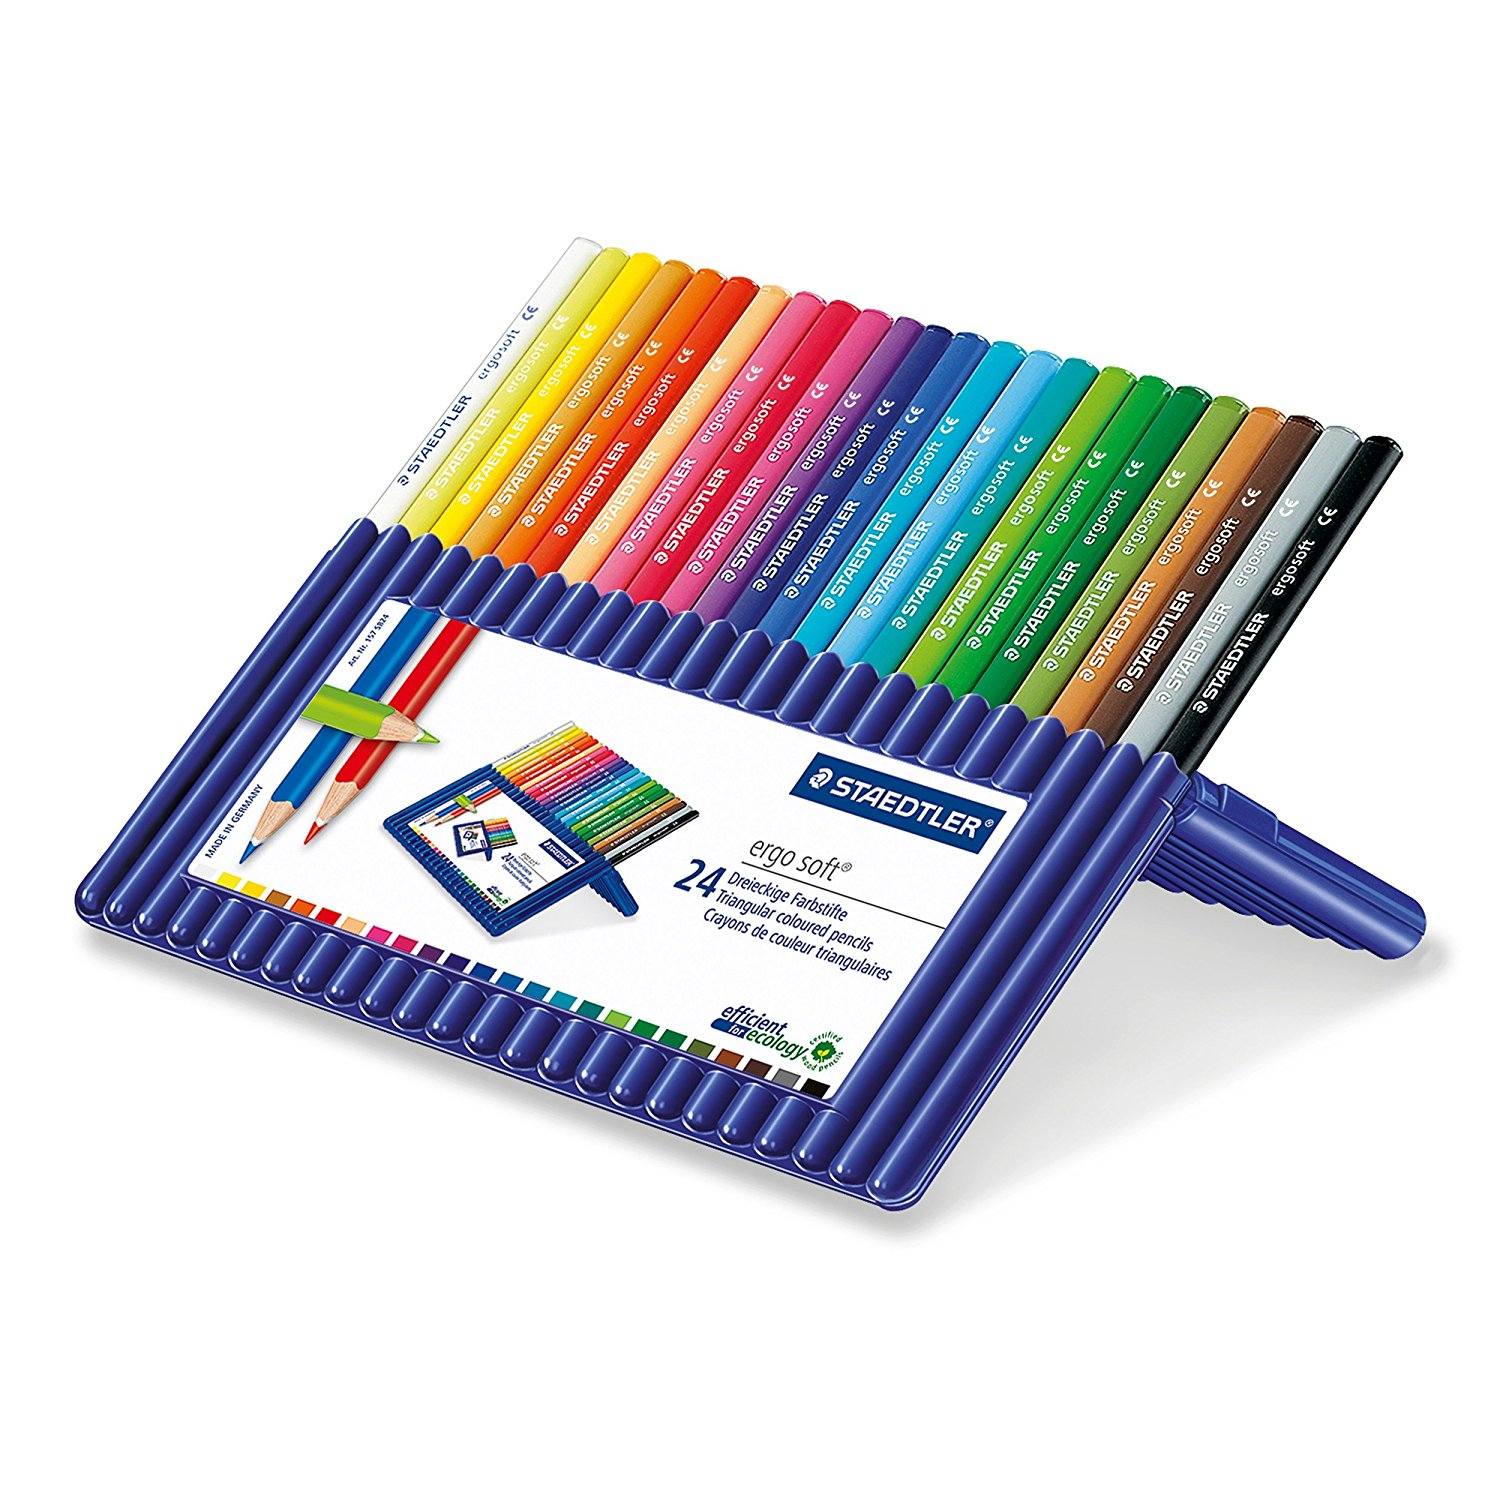 Staedtler Ergosoft Colored Pencils – Set of 24 Colors in Stand-Up Easel Case